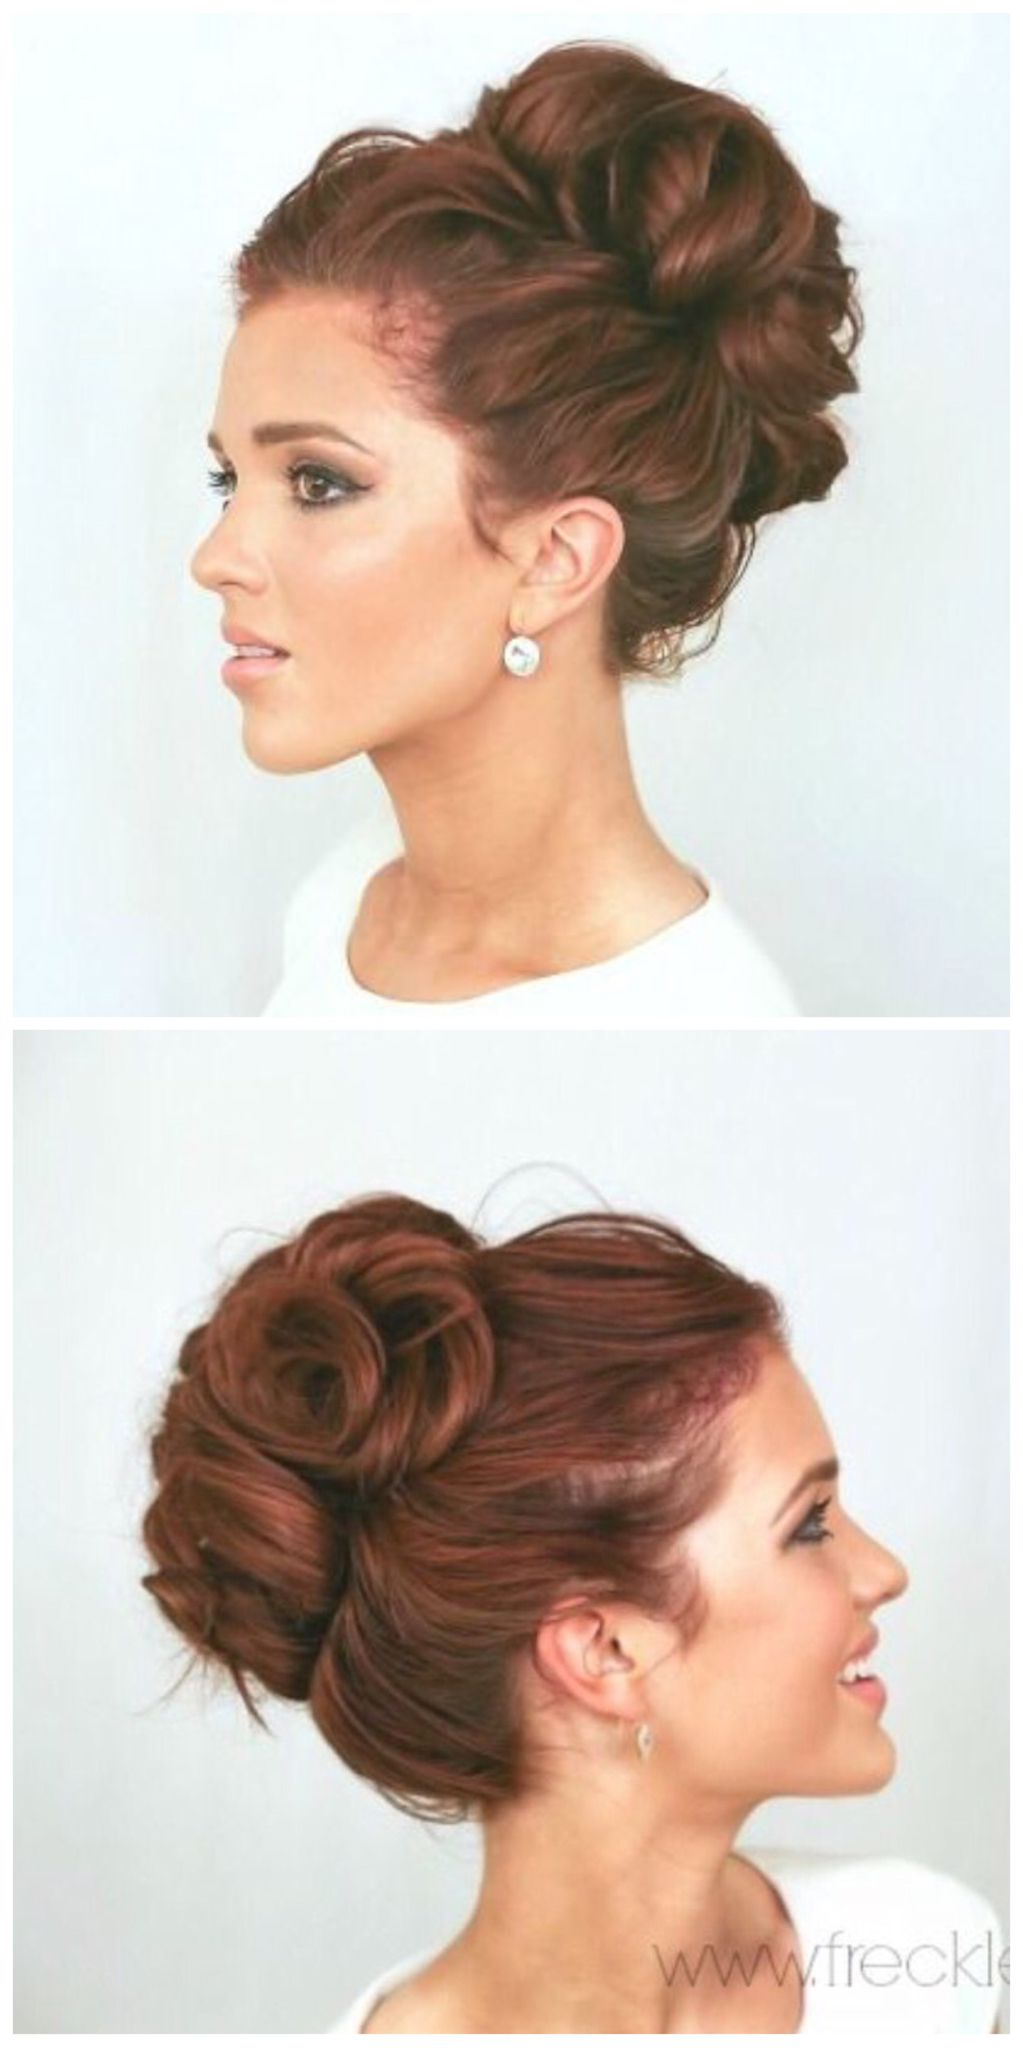 wedding hairstyles | frisuren | bridesmaid hair, bridal hair